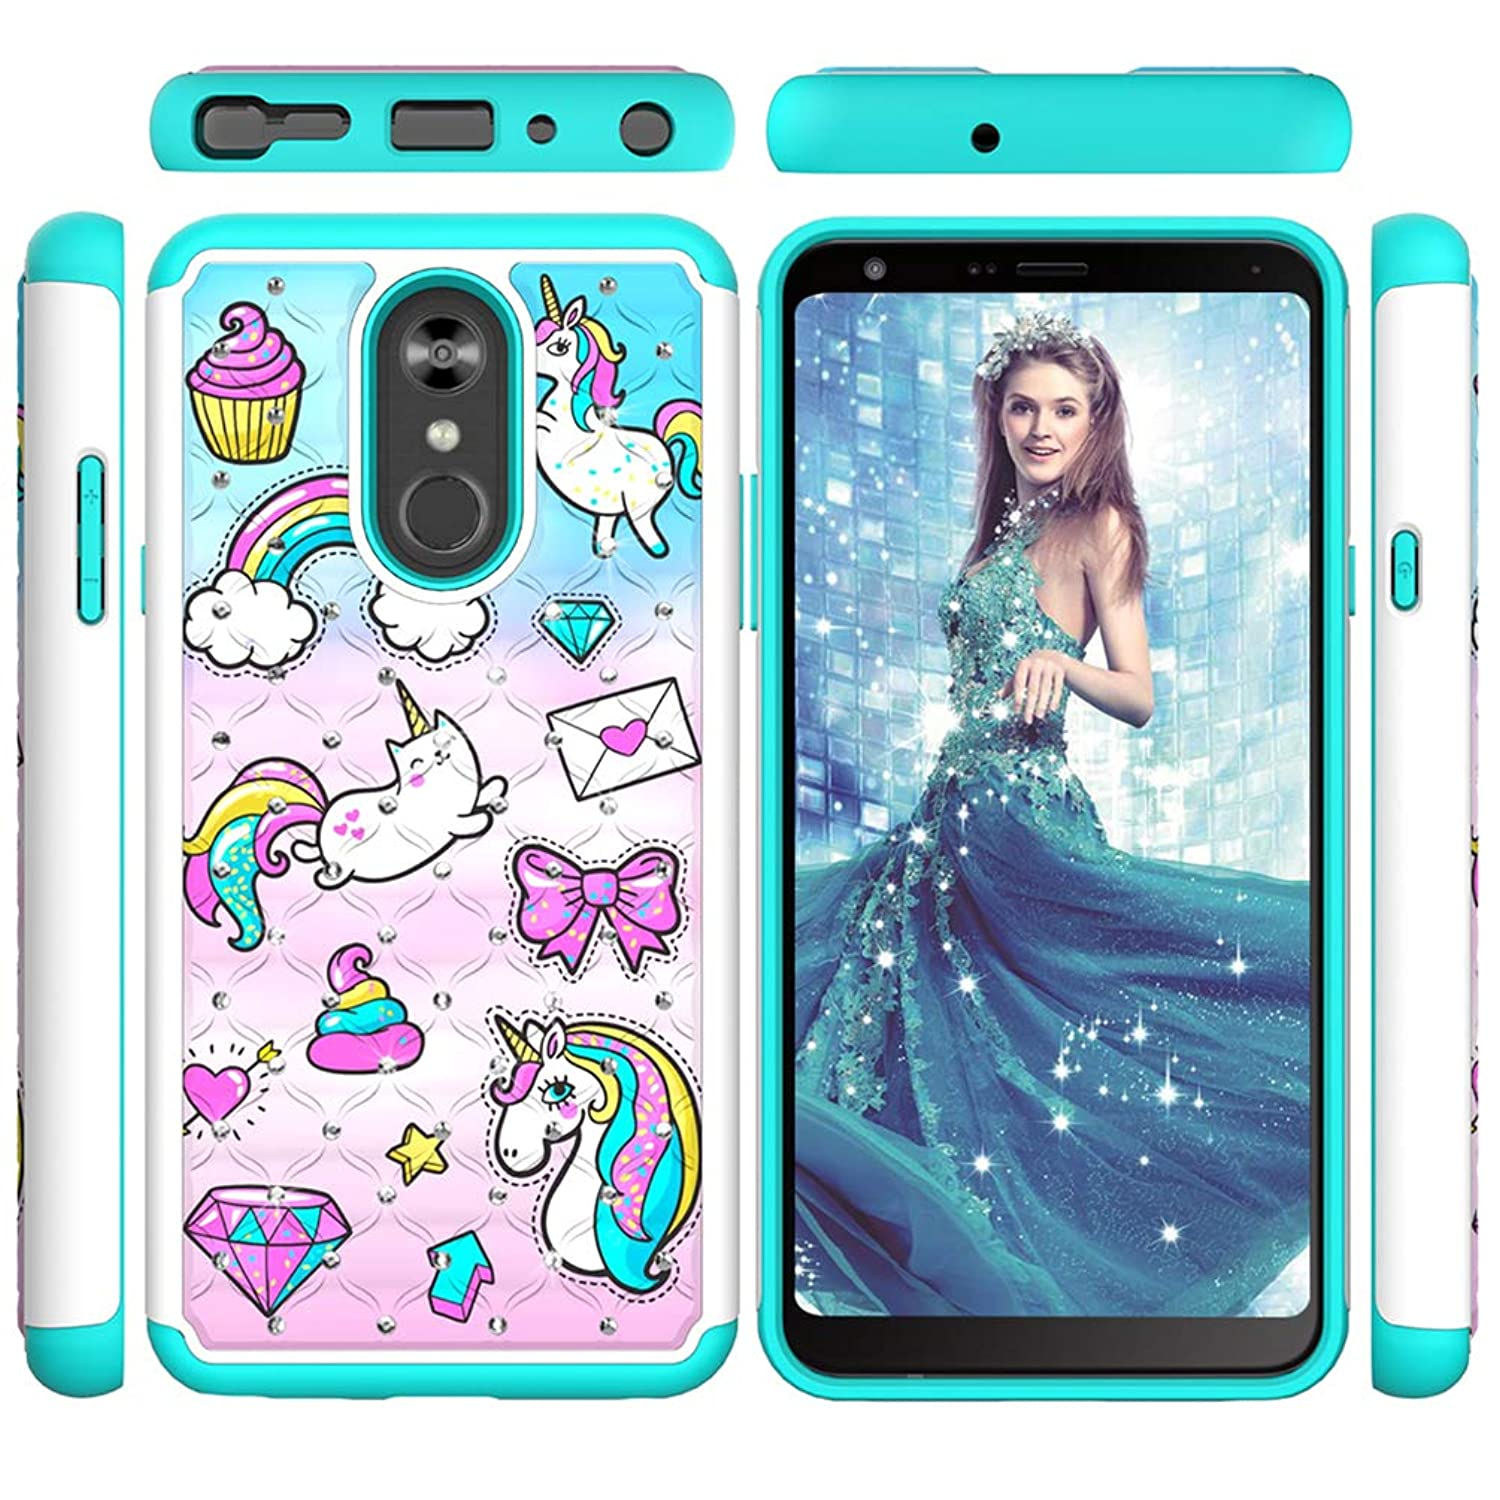 LG Stylo 4 Case, LG Q Stylus Hybrid Rugged Heavy Duty Shock Absorption?Drop?Resistant Armor Dual Layers Shockproof Soft TPU Bumper PC Shell Bling Shiny Glitter Diamonds Painting Cover for LG Stylo 4